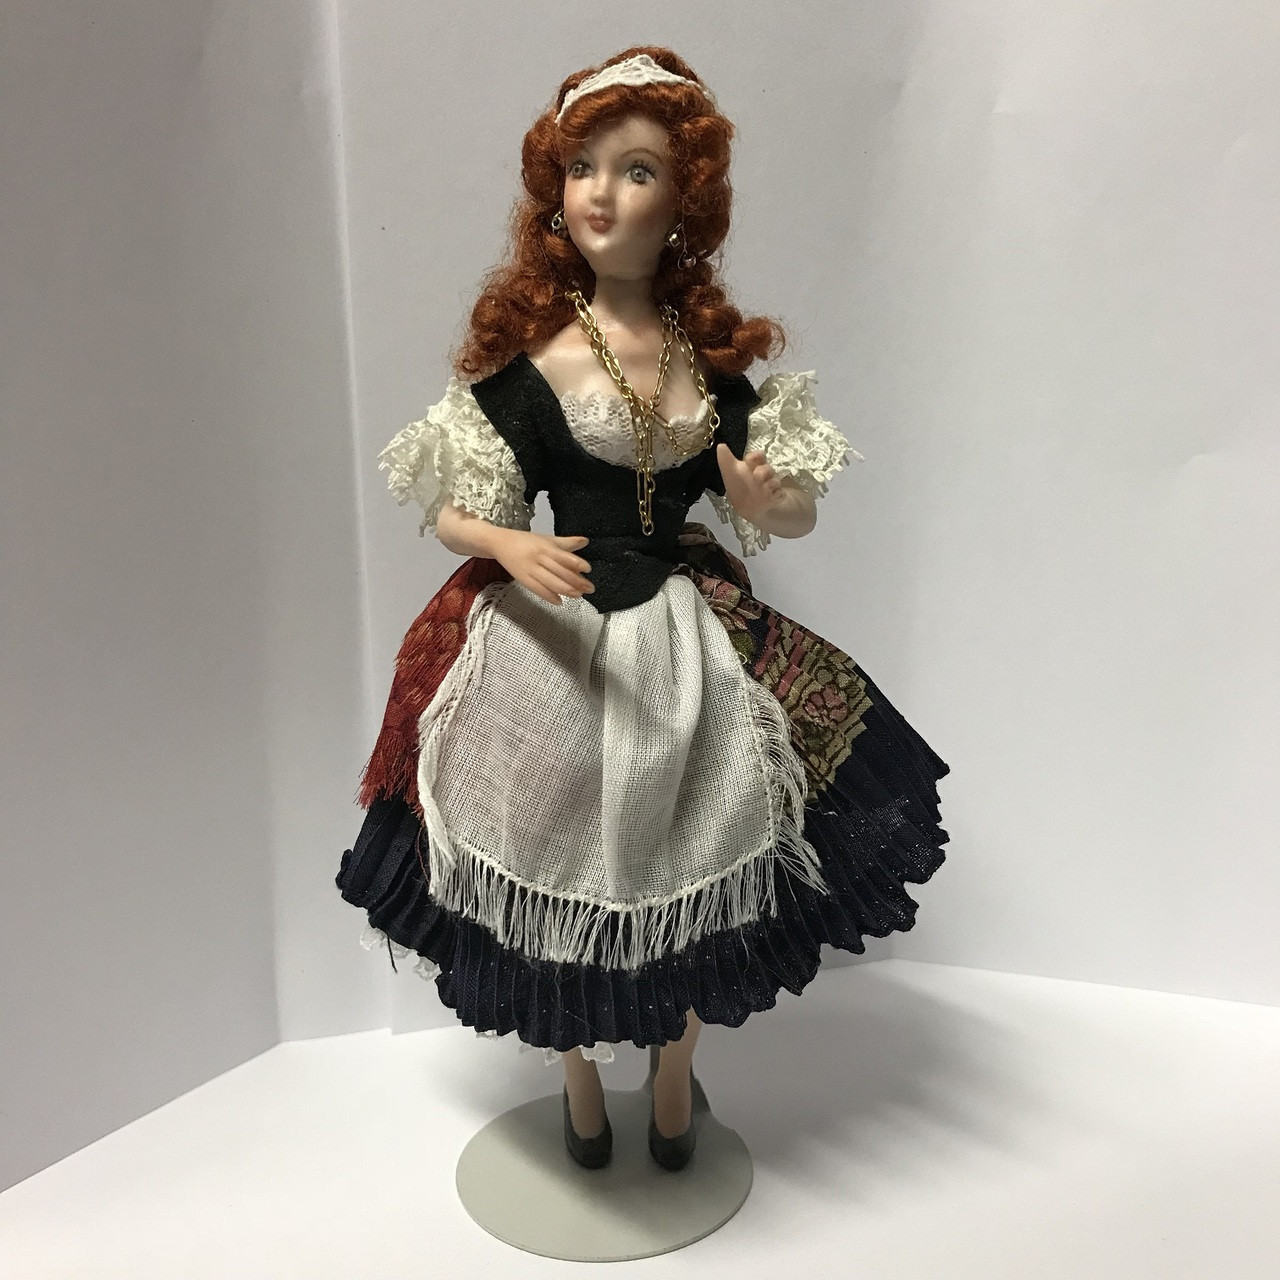 1:12 Scale Porcelain Gypsy Doll